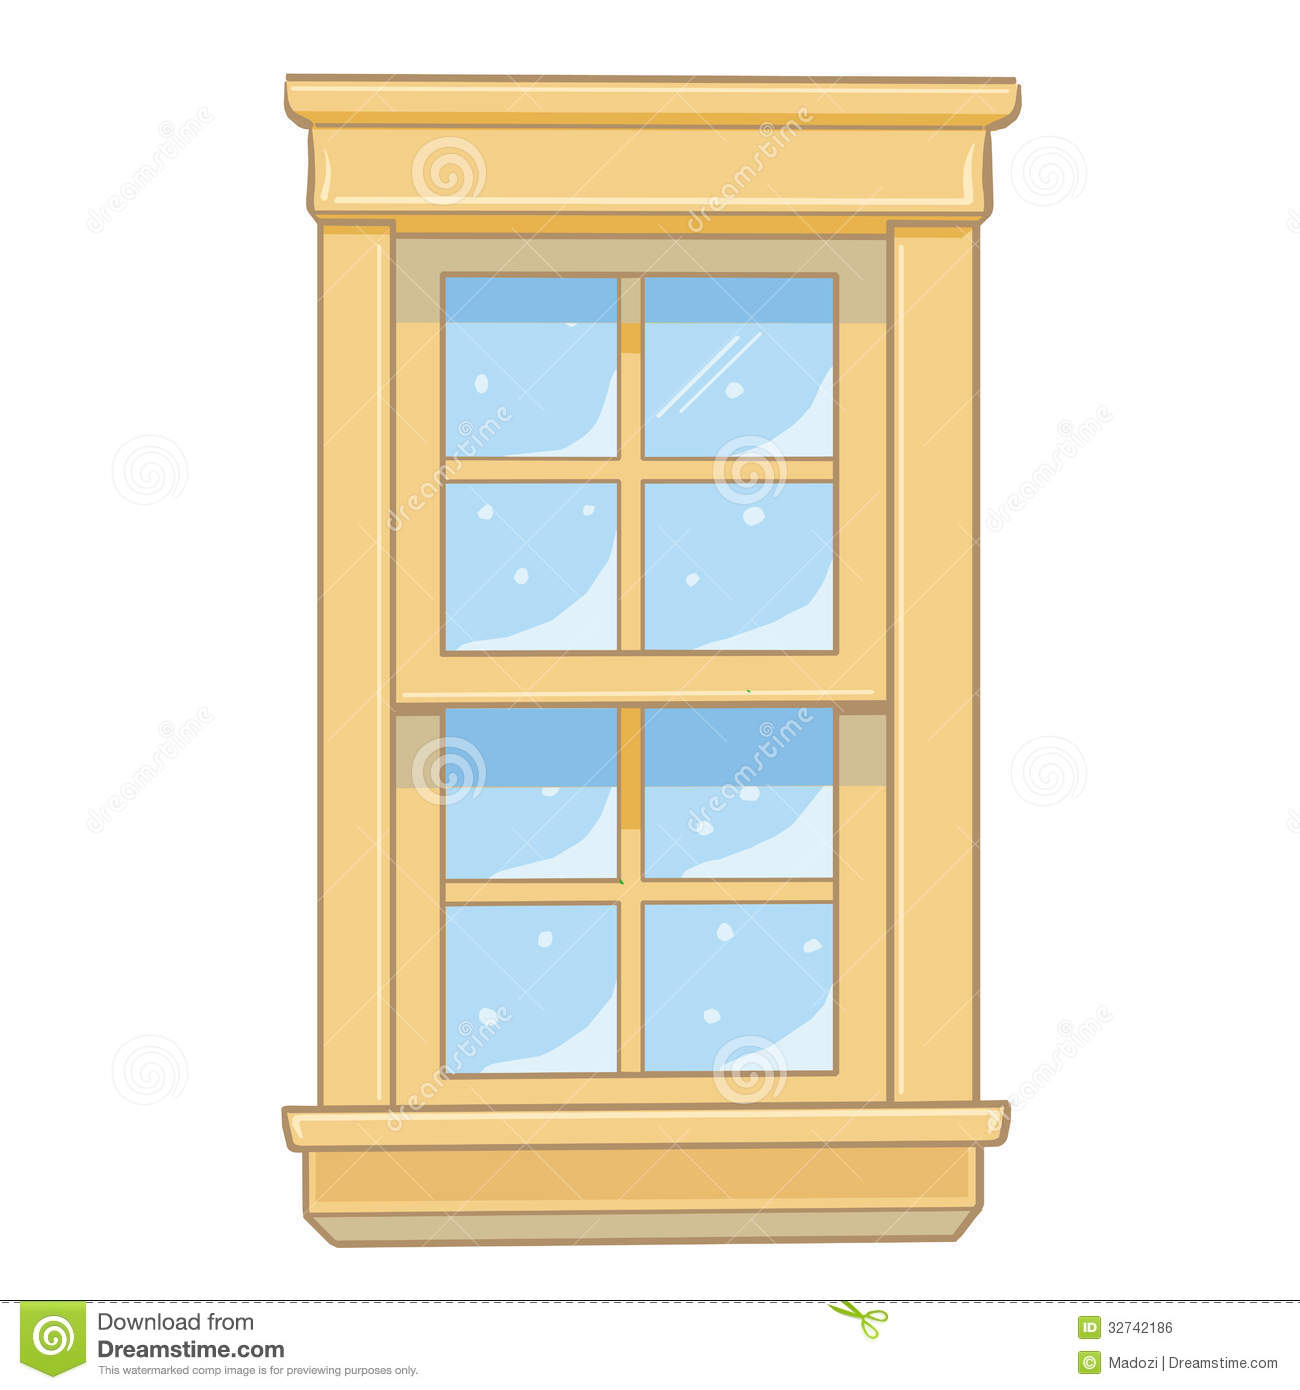 Wooden window isolated illustration royalty free stock for Window design cartoon